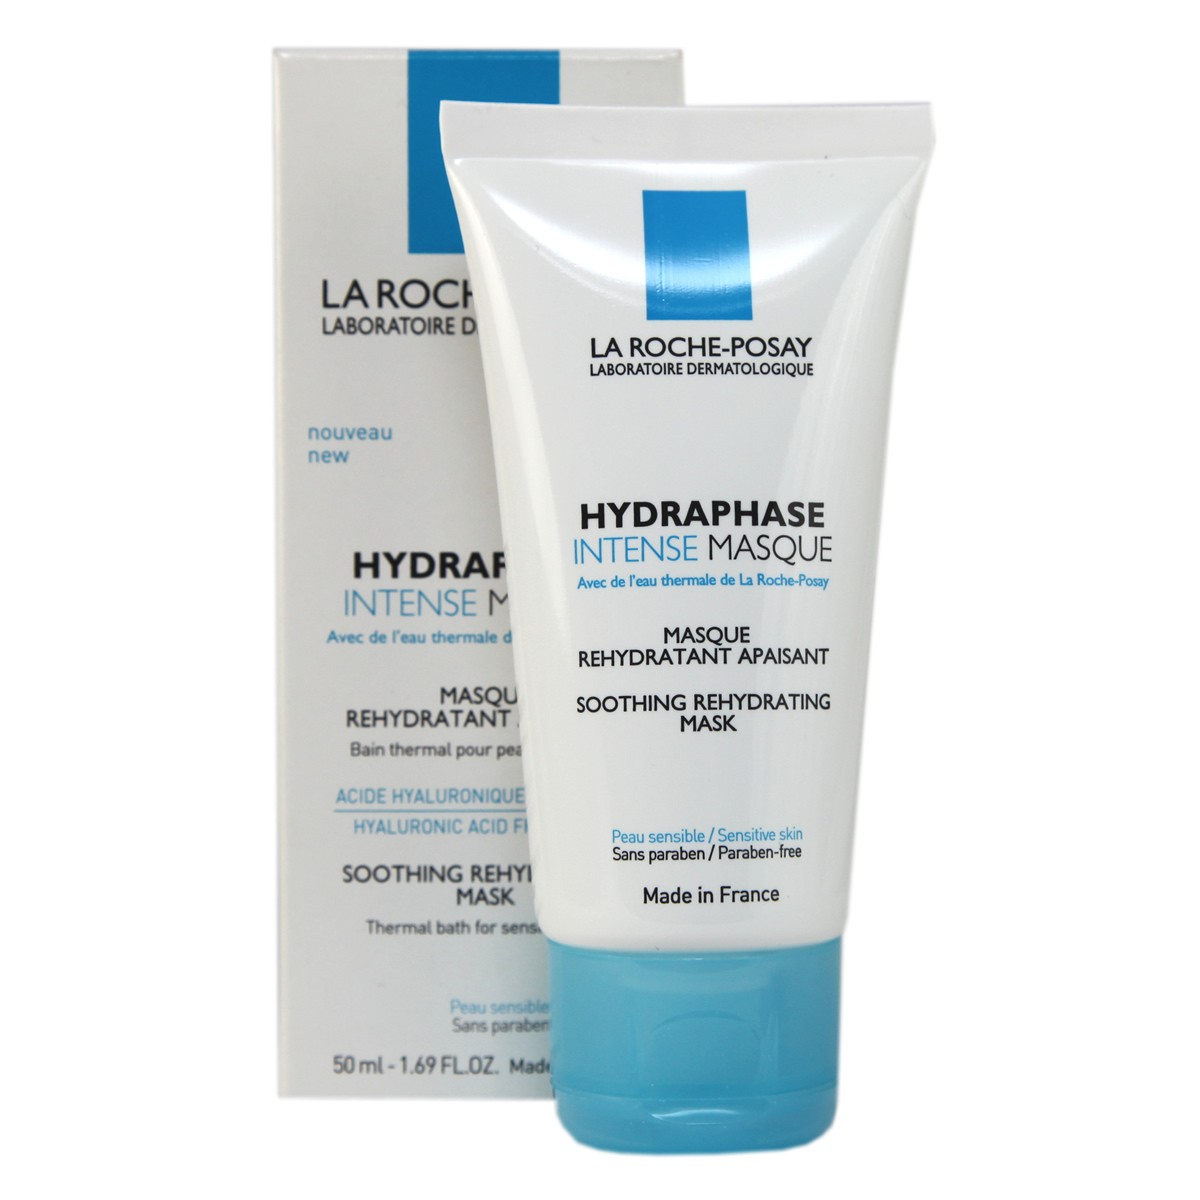 La Roche-Posay Hydraphase Intense Mask